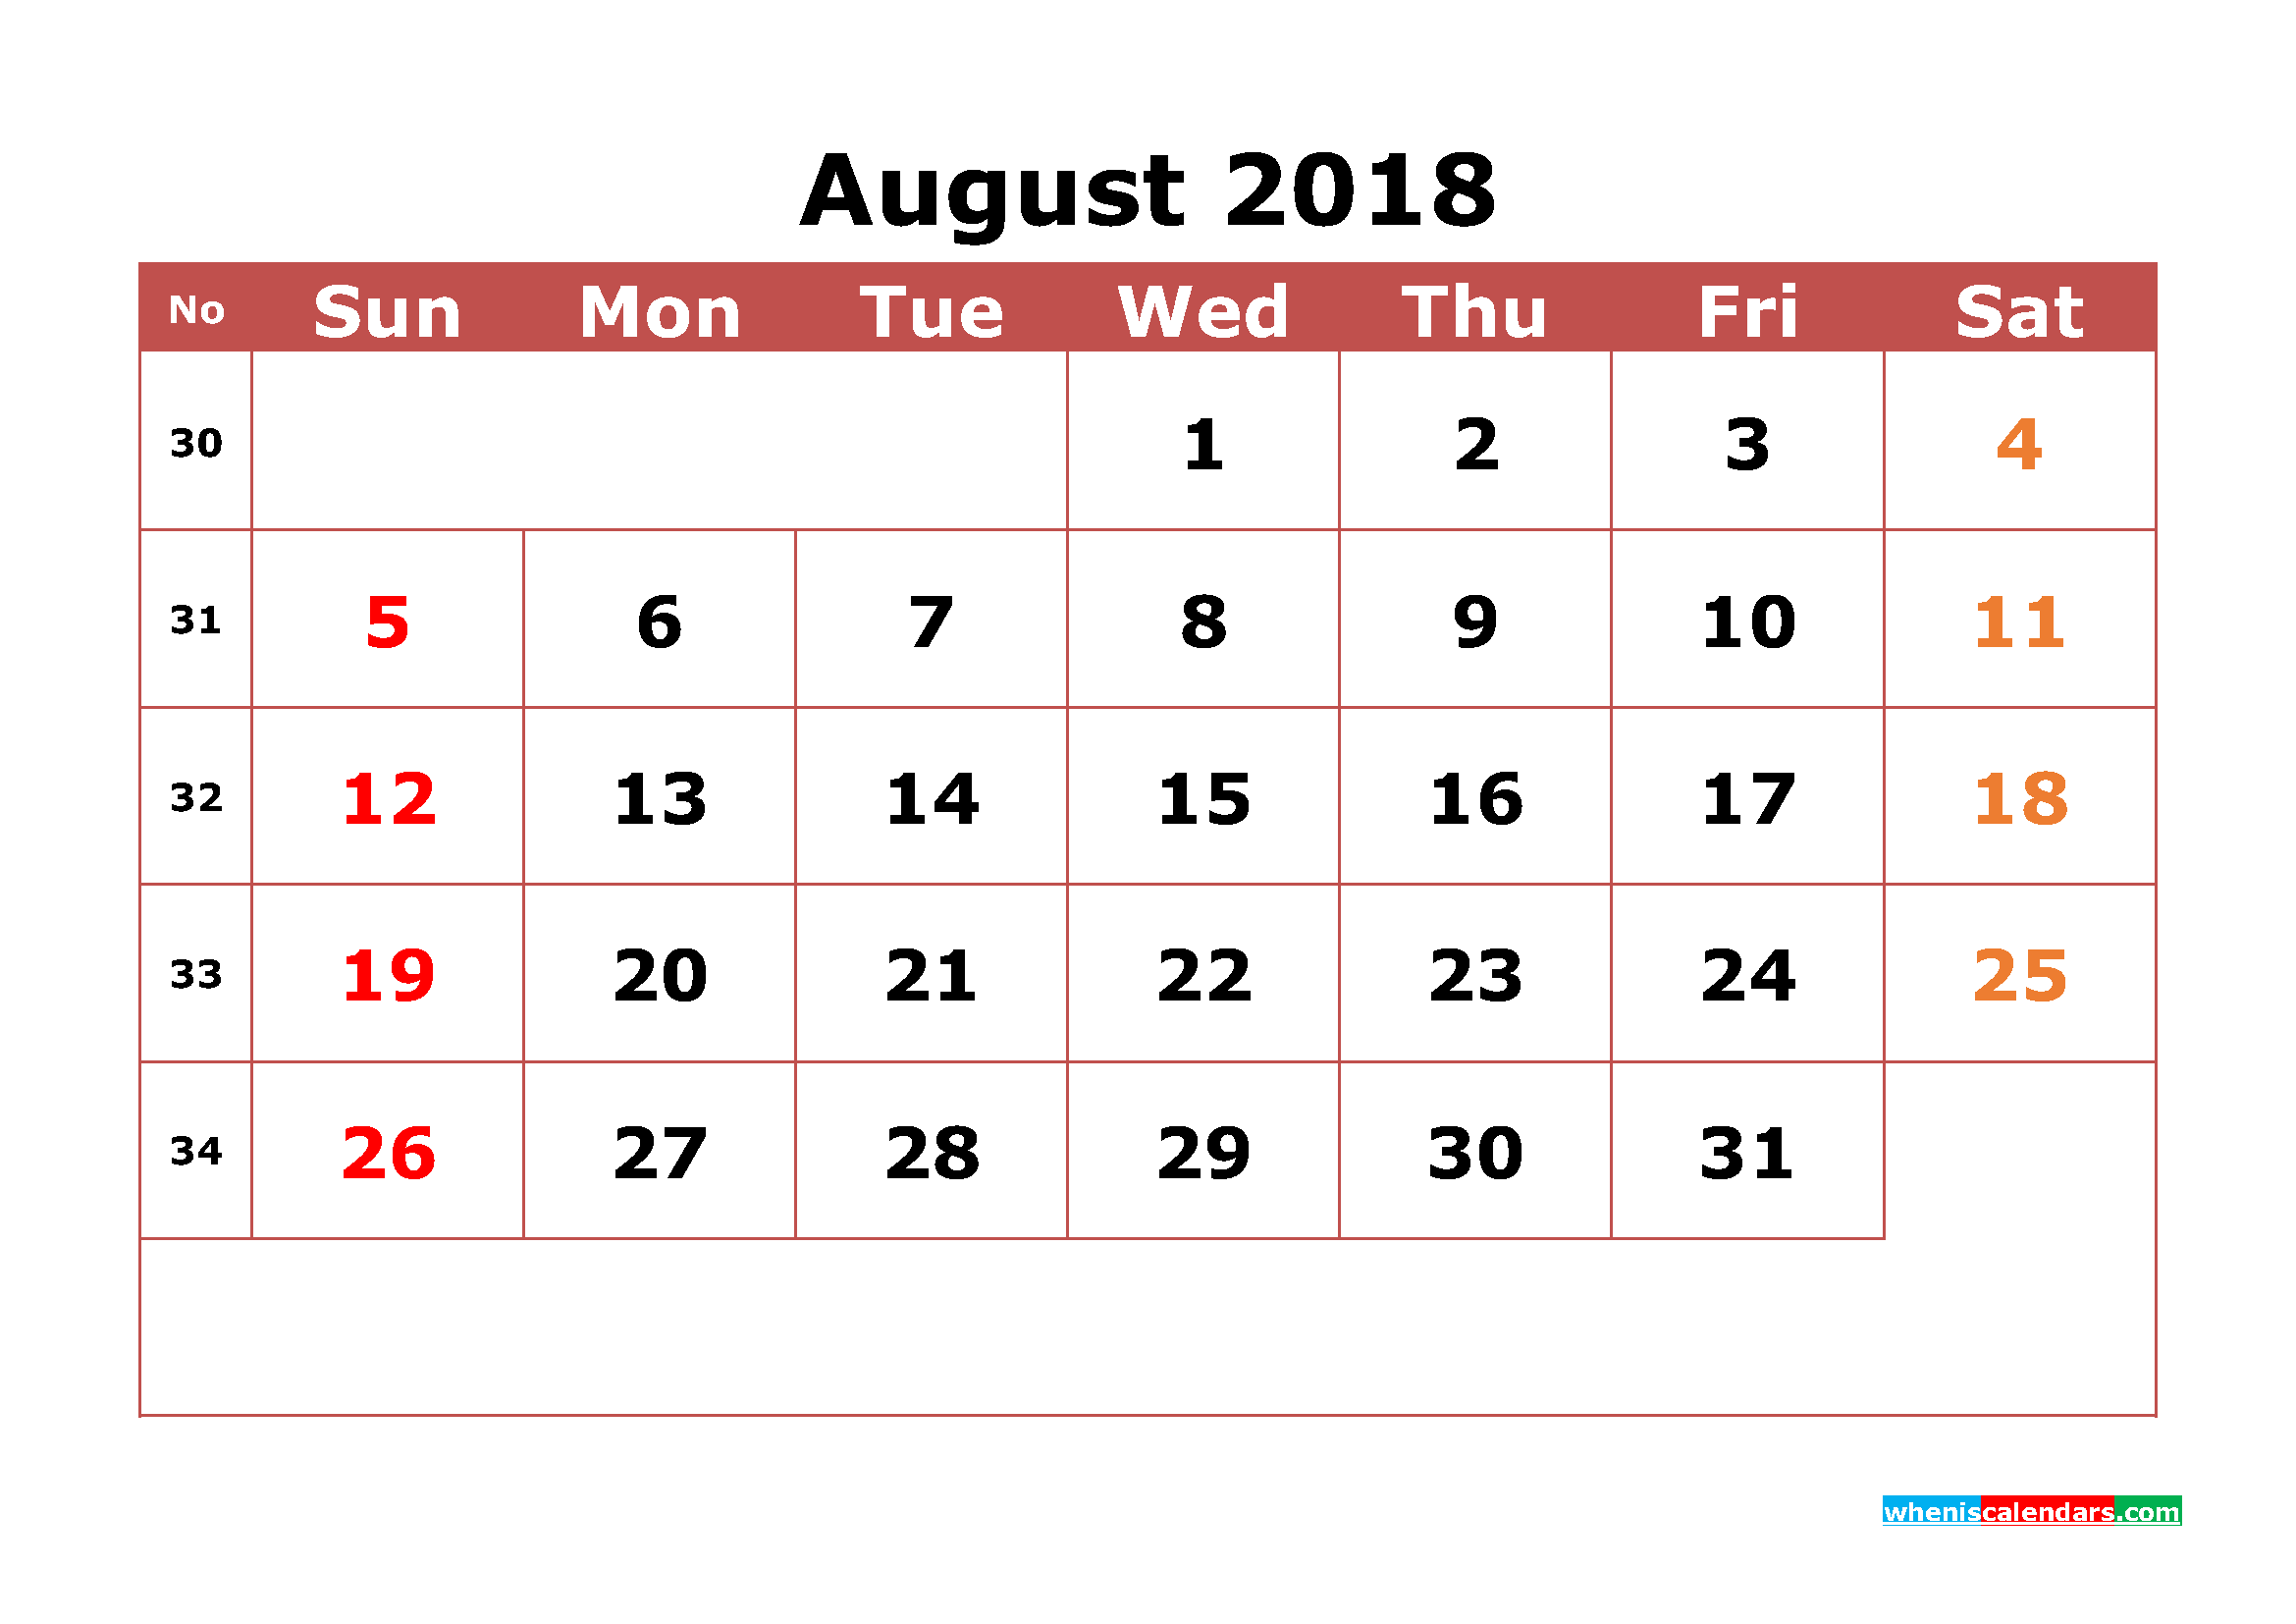 August 2018 Calendar Printable with Week Numbers Image